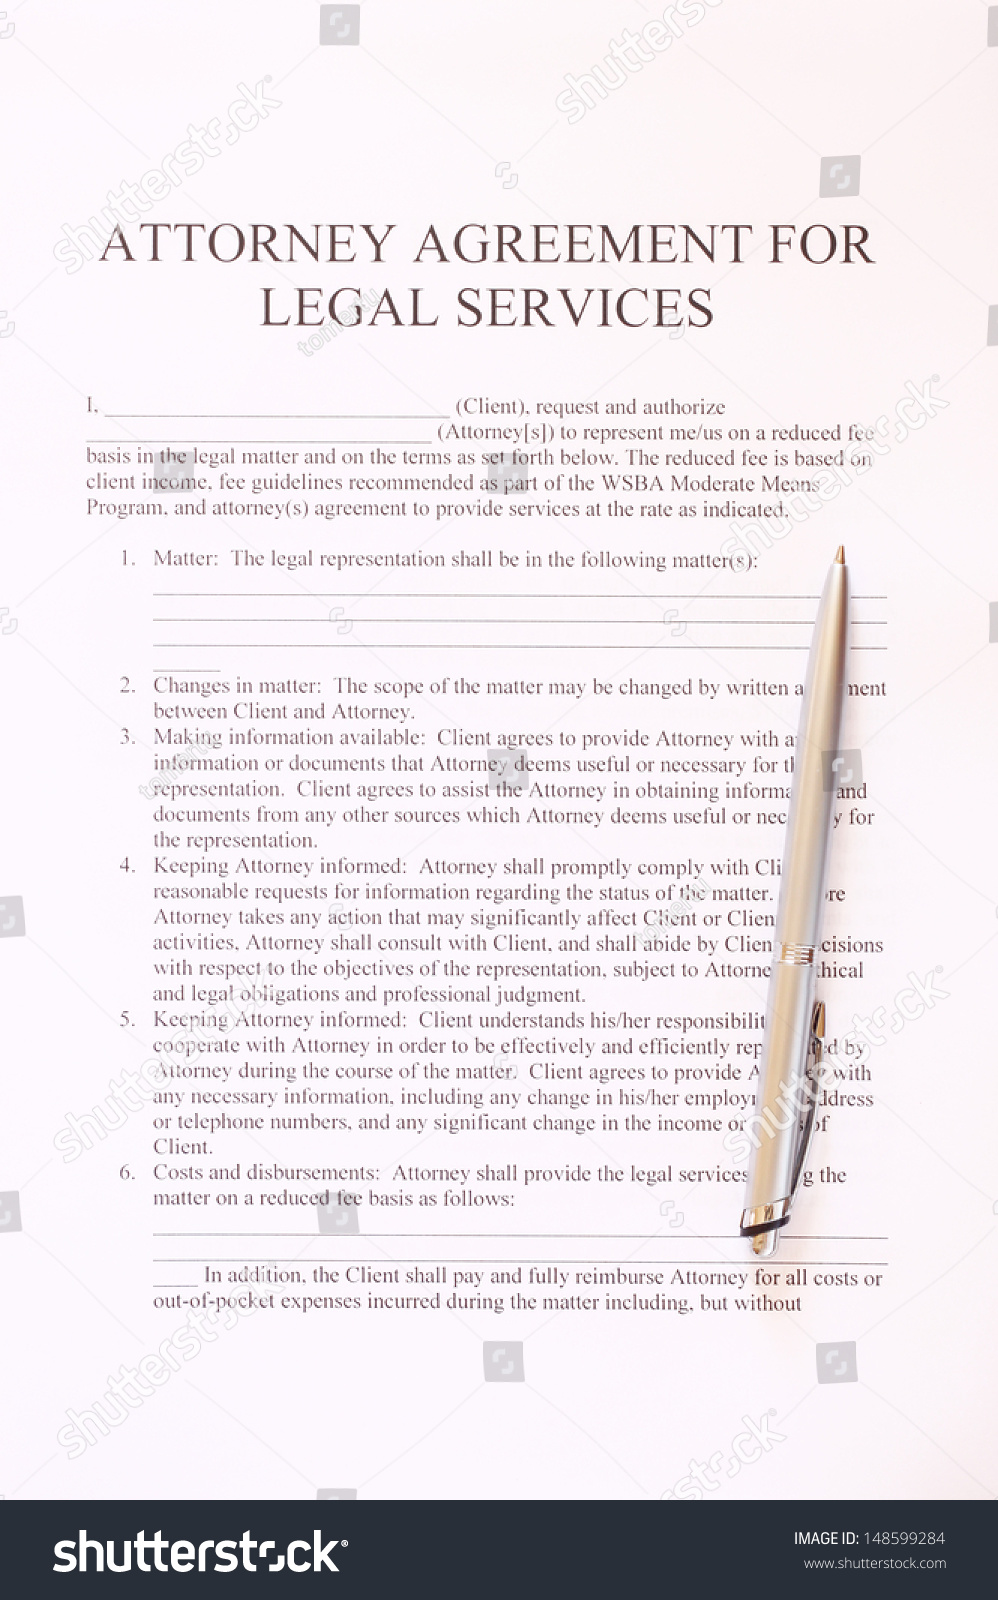 Attorney Agreement Legal Services Form Pen Stock Photo Royalty Free